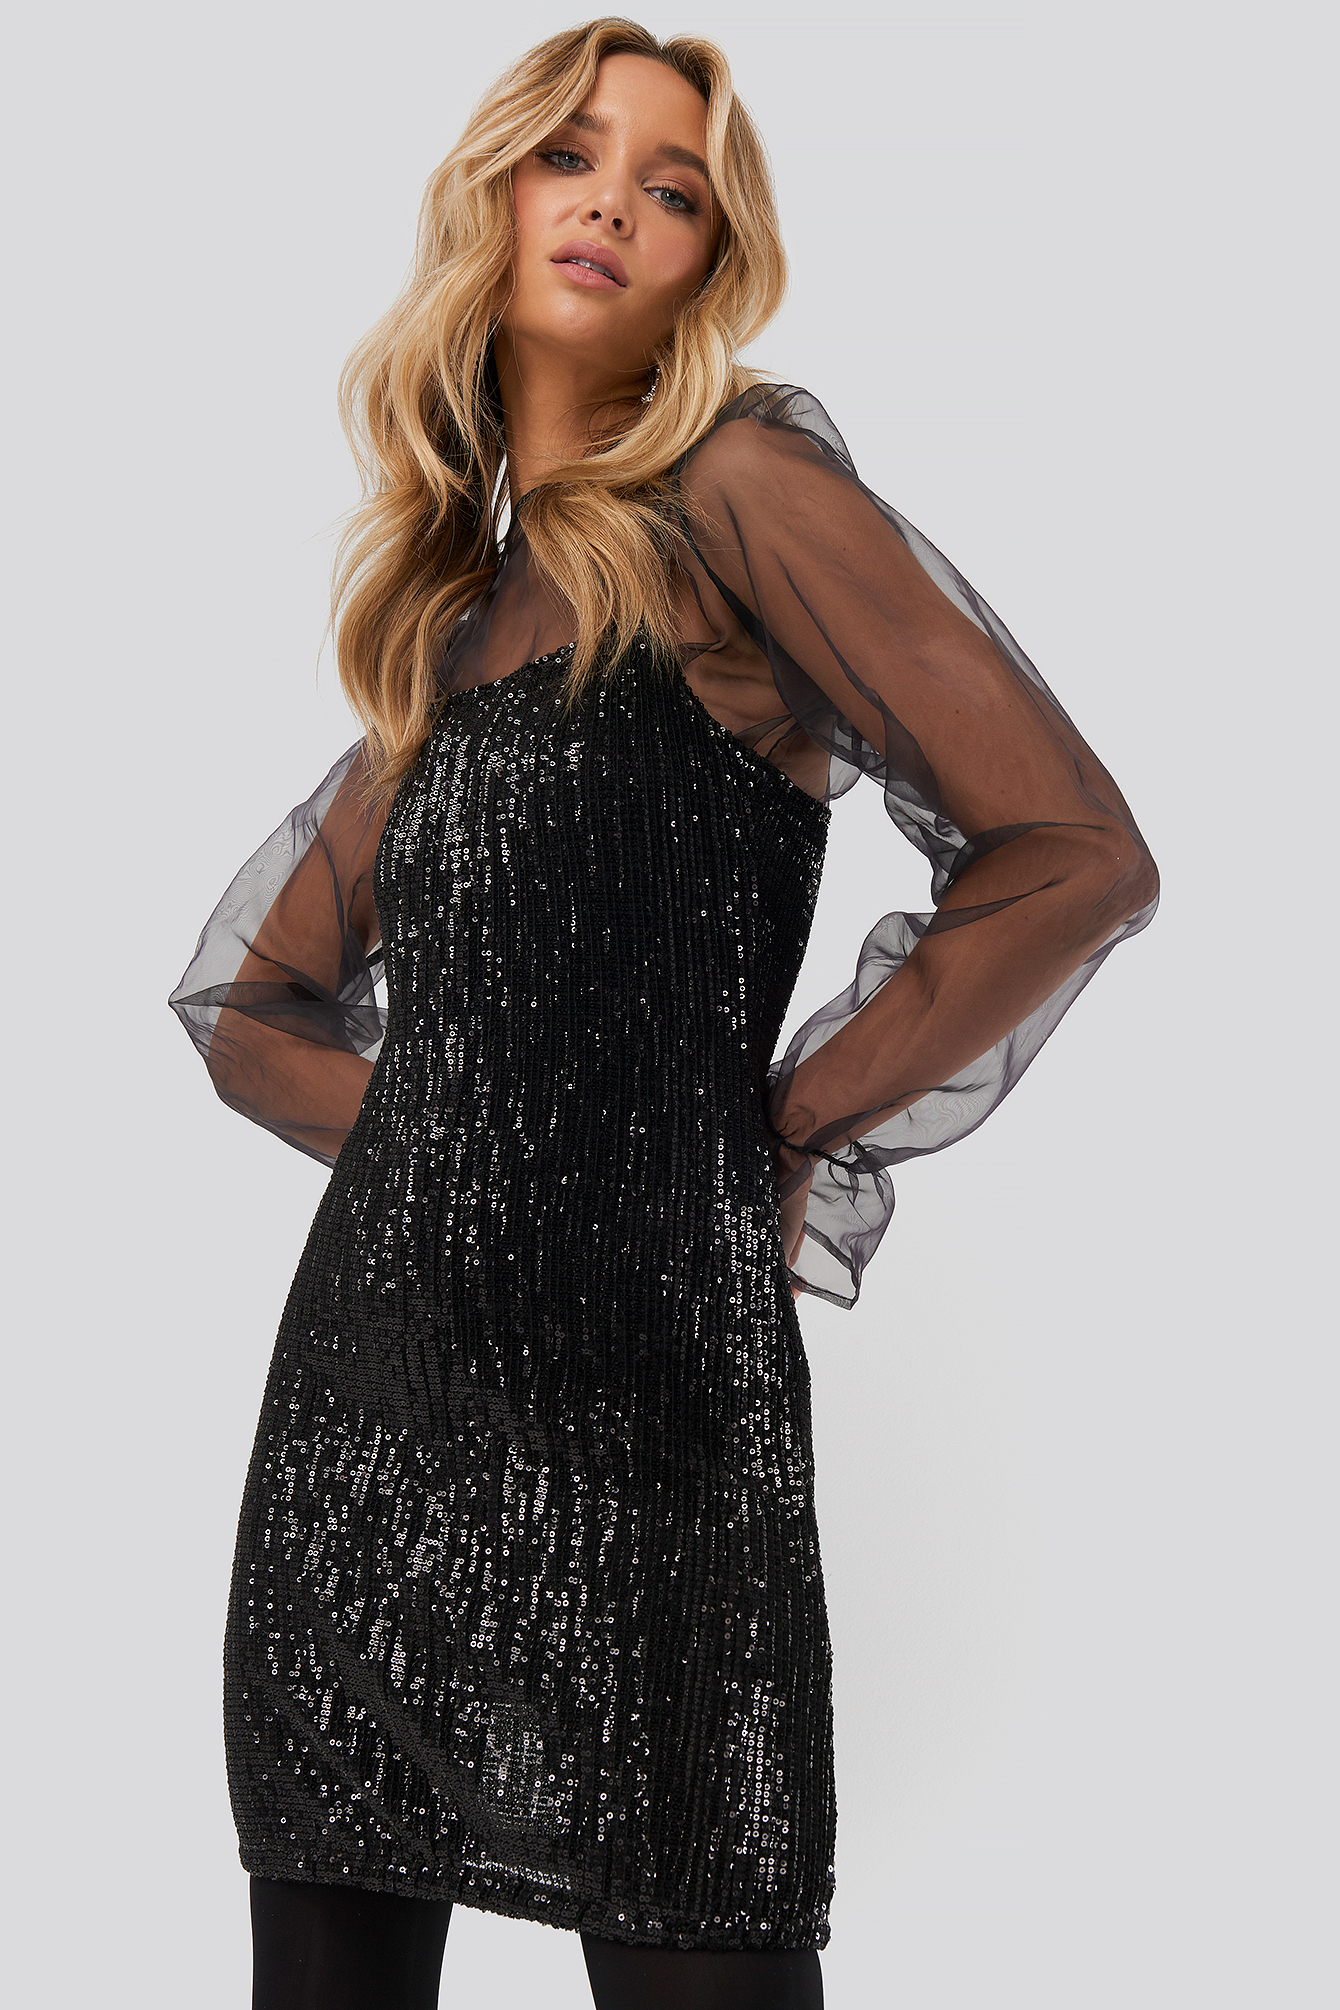 Black Spaghetti Strap Sequin Dress